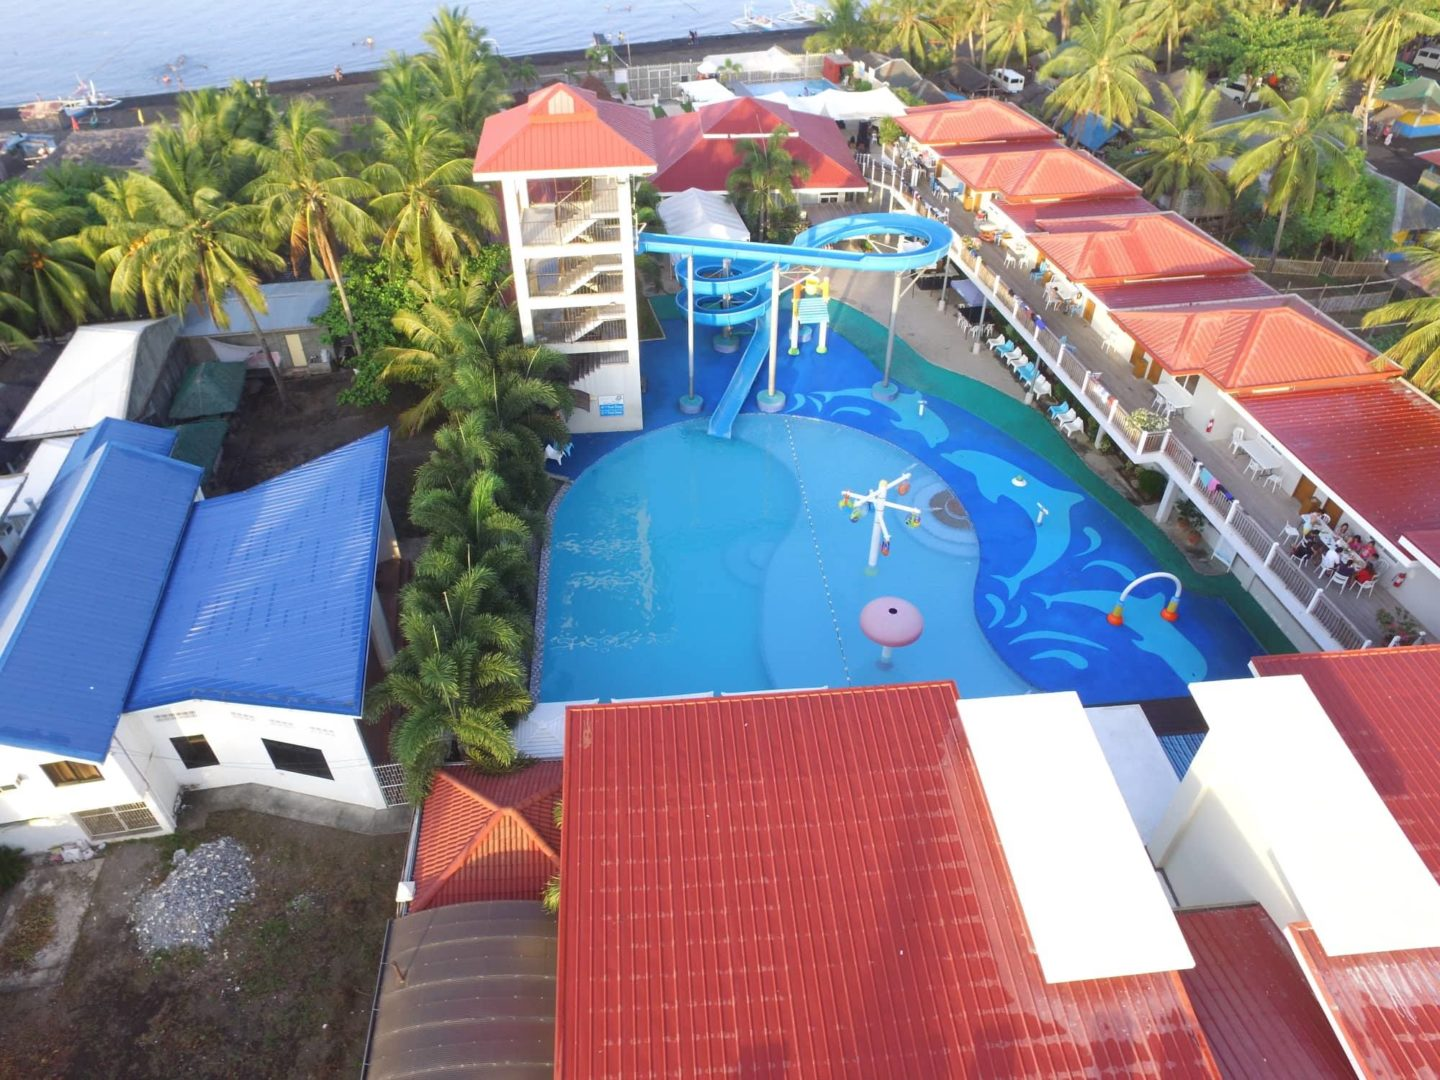 CML Beach Resort & Waterpark - https://thejerny.com